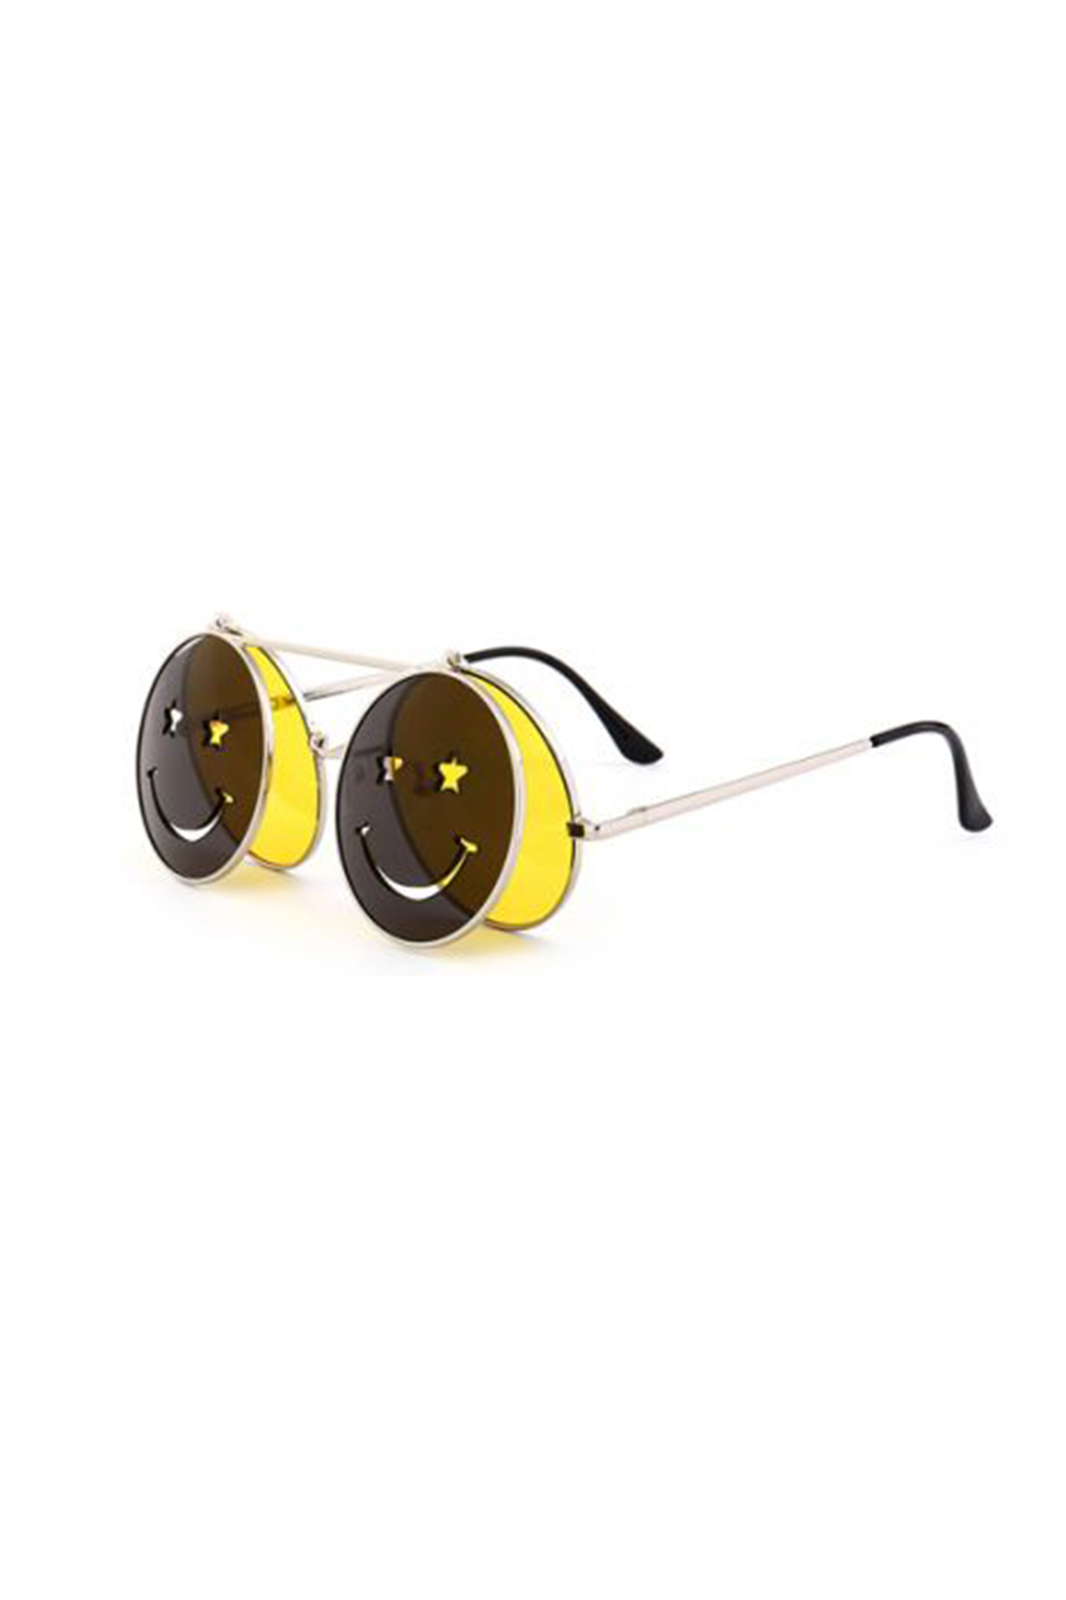 Sunglasses Smiley Face Flip Up Yellow